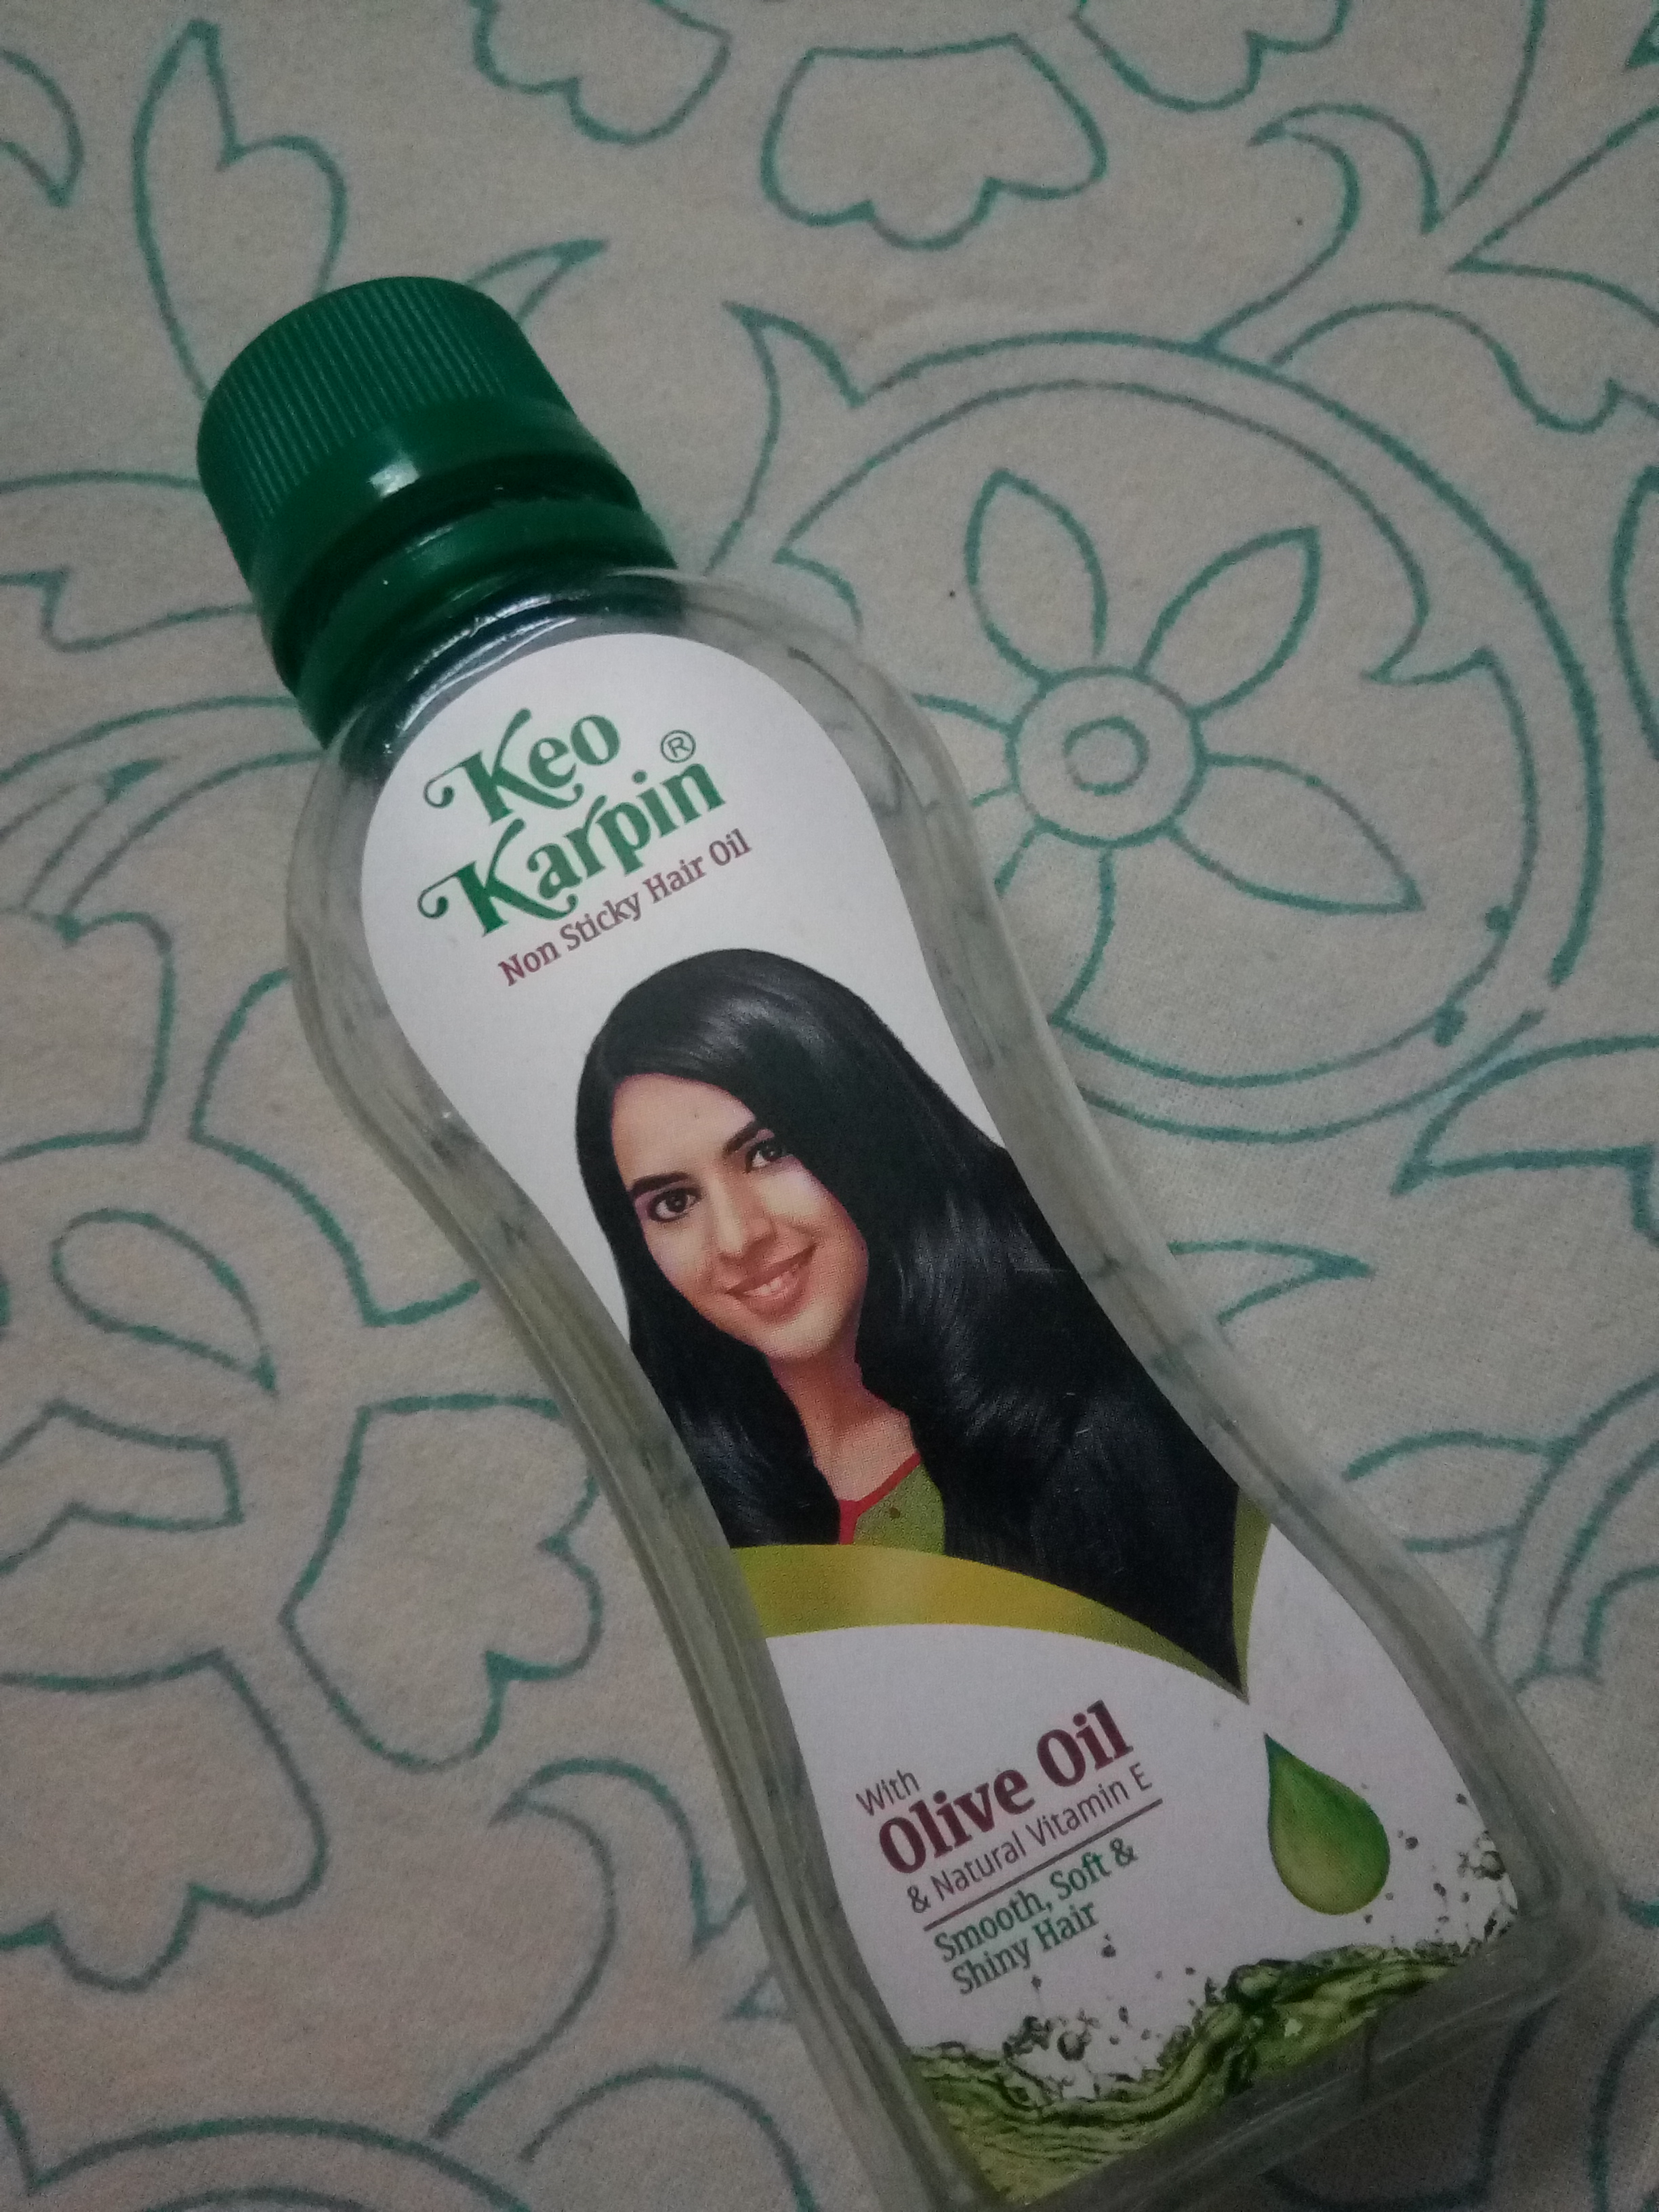 Keo Karpin Non-Sticky Hair Oil-Keo Karpin Non-Sticky Hair Oil-By aflyingsoul